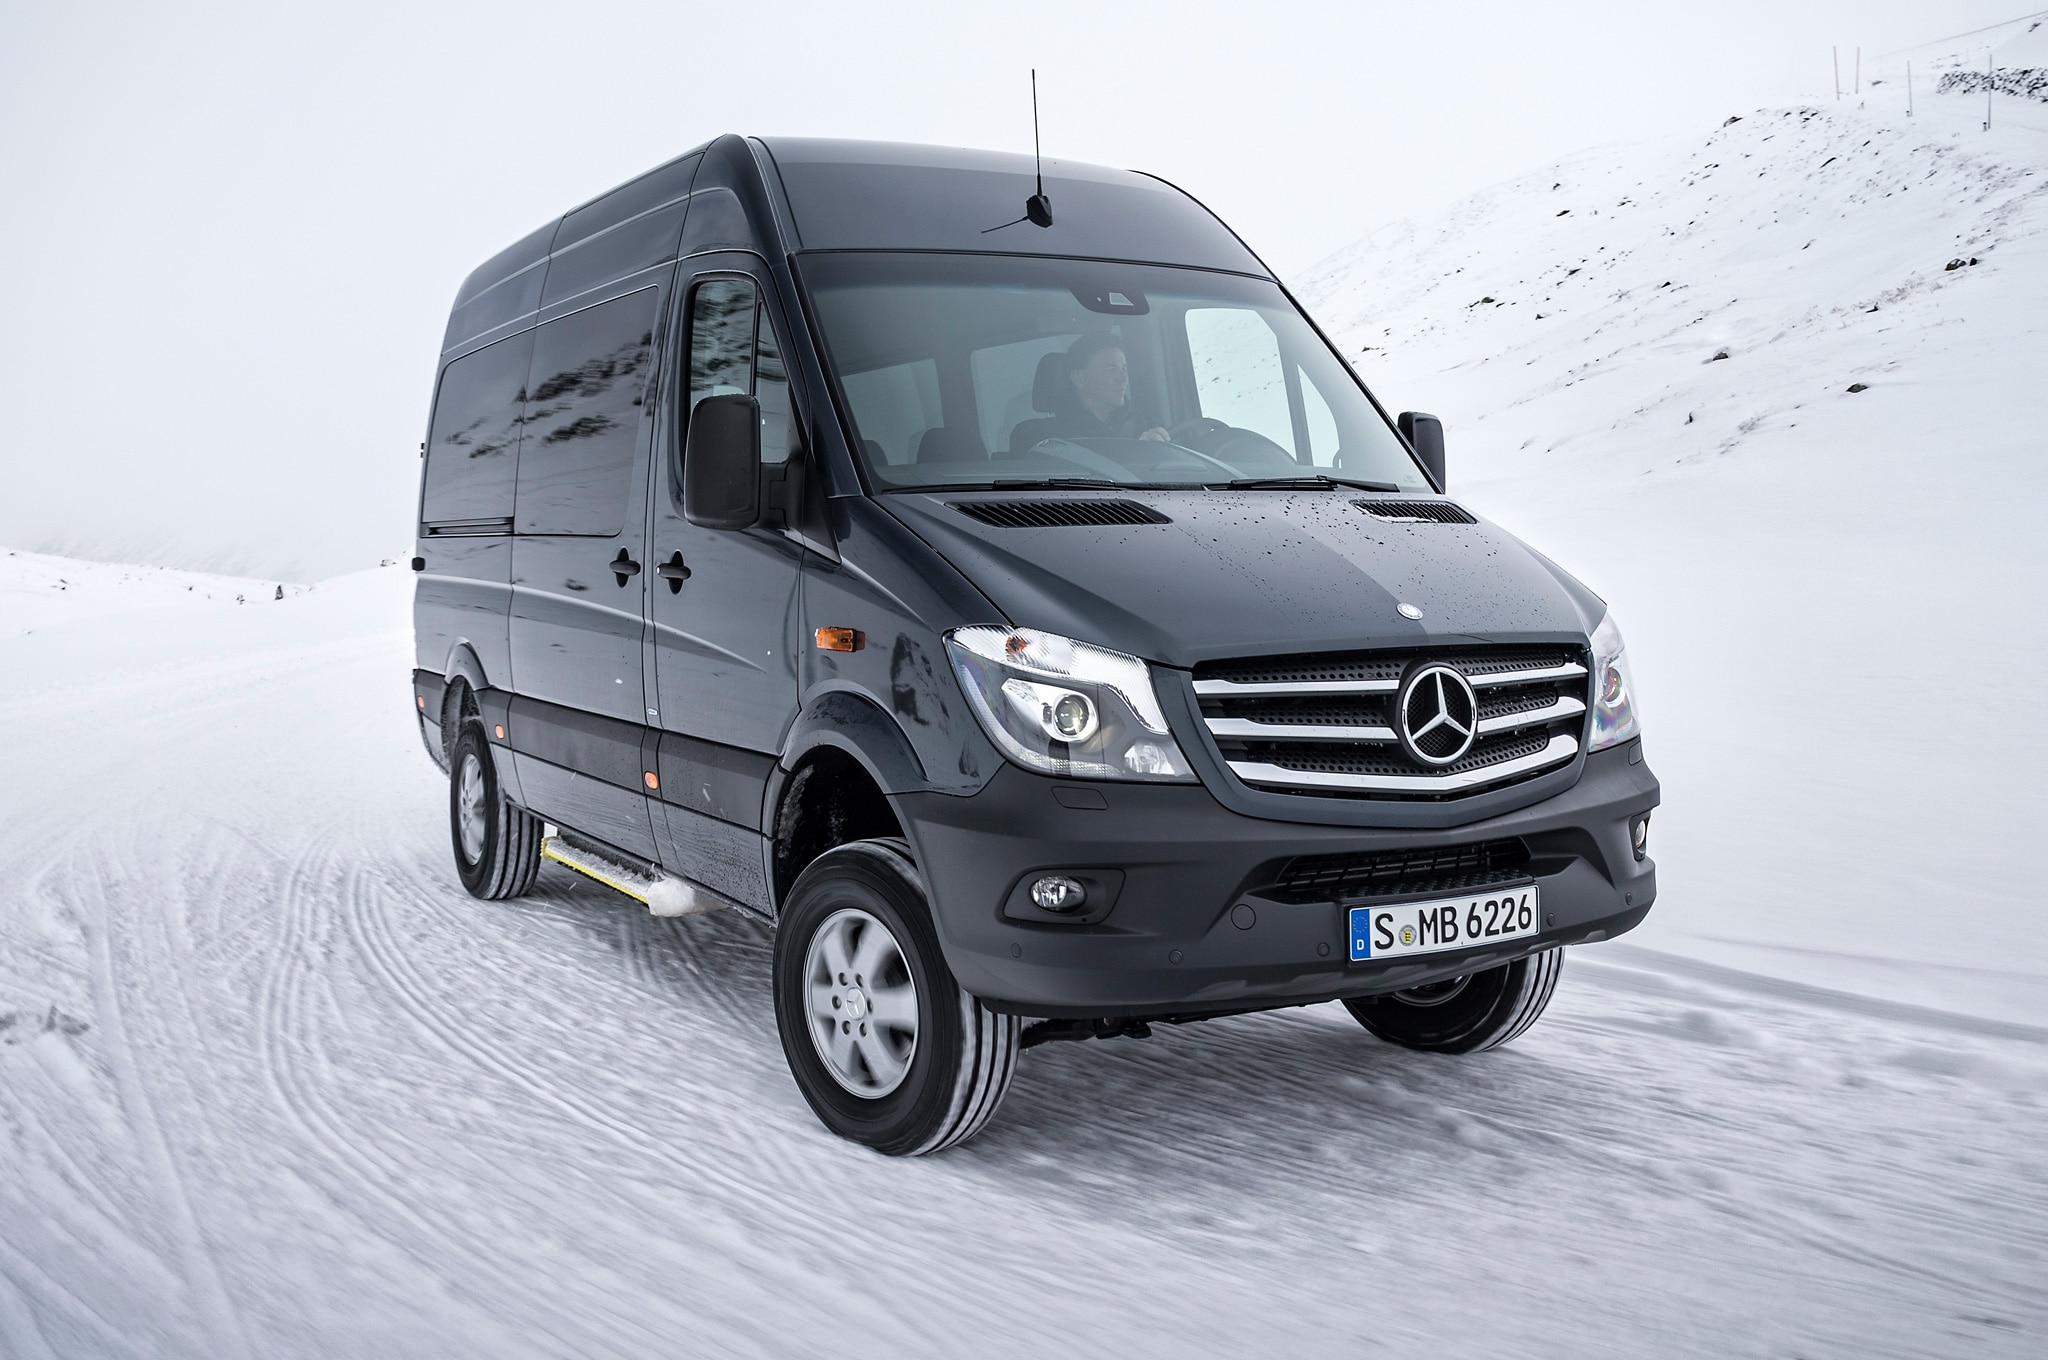 2015 mercedes benz sprinter 4x4 confirmed for u s market for Price of mercedes benz sprinter